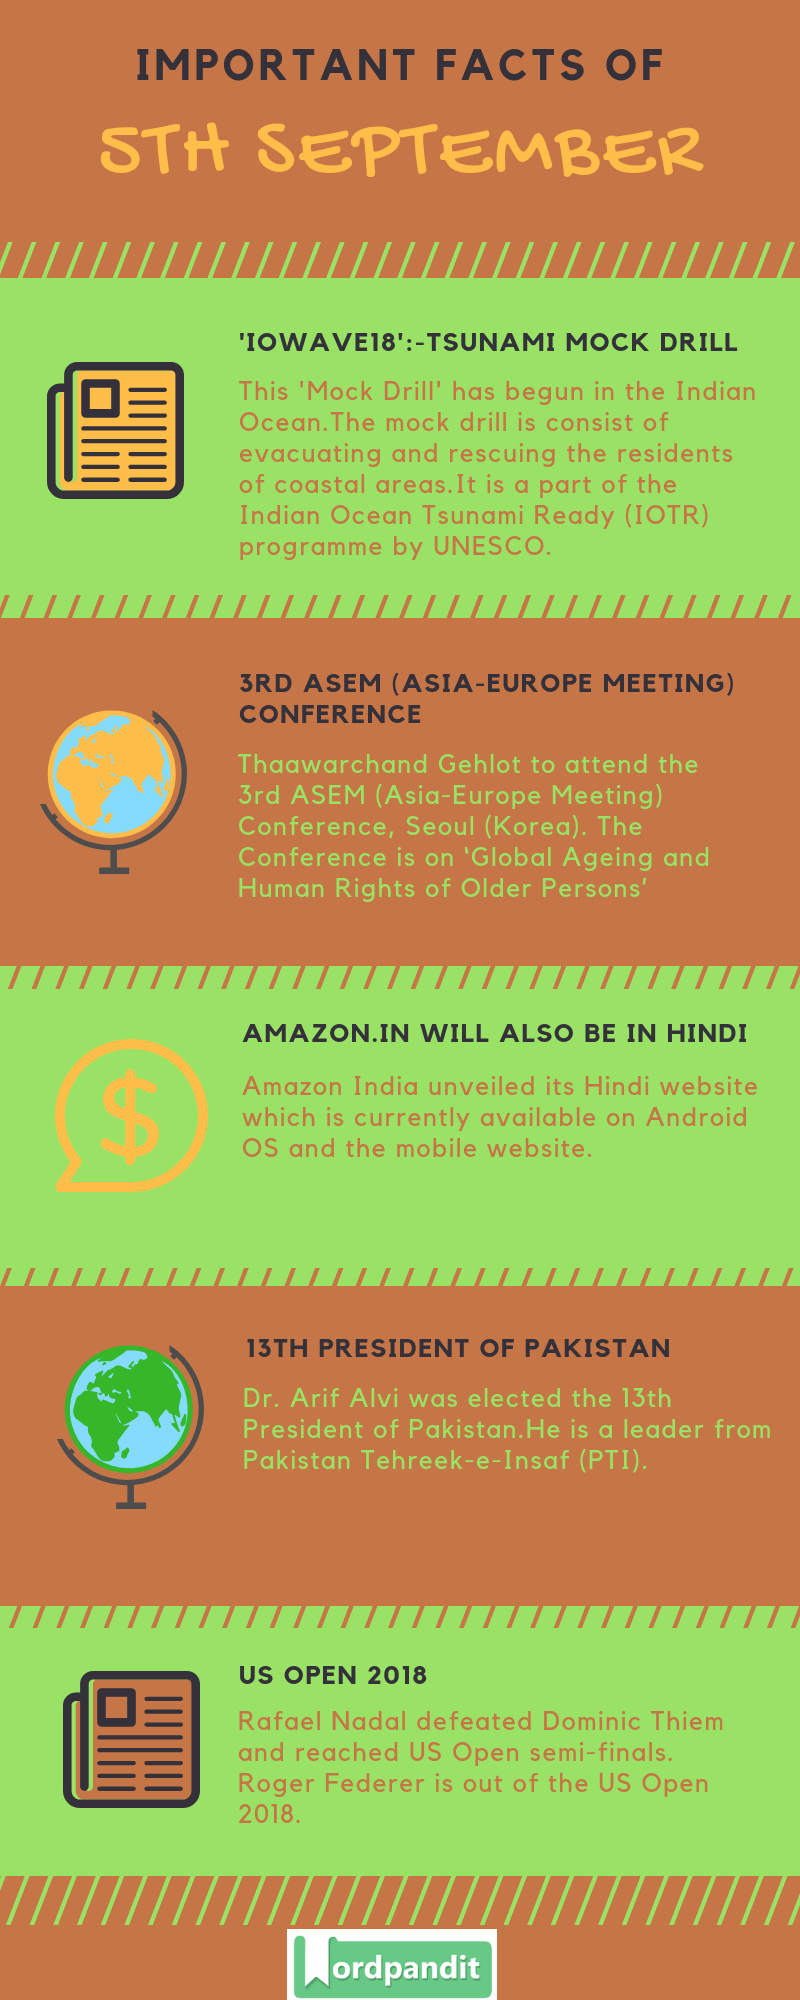 Daily Current Affairs 5 September 2018 Current Affairs Quiz 5 September 2018 Current Affairs Infographic